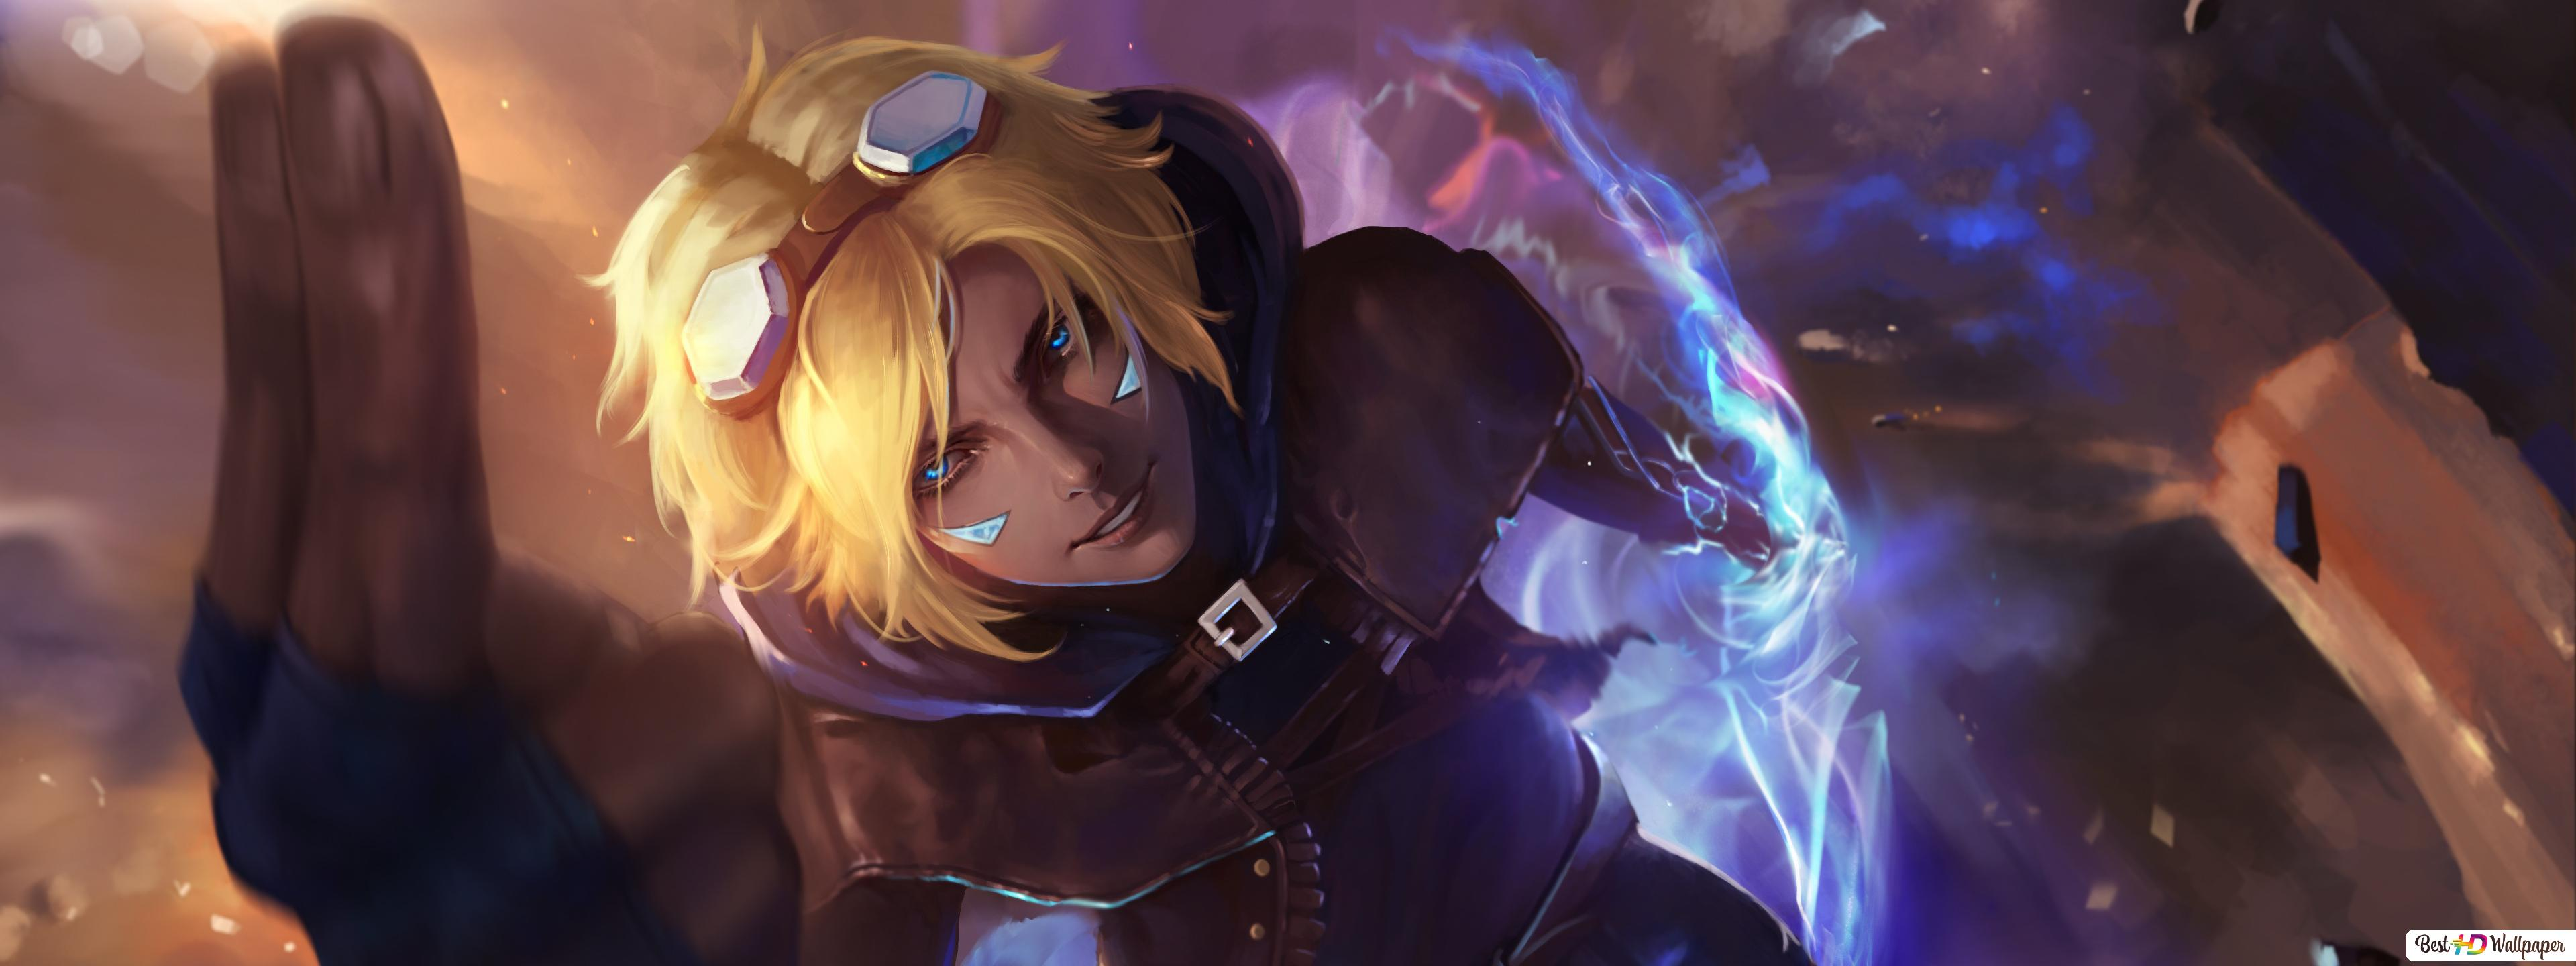 League Of Legends Lol Ezreal Hd Wallpaper Download